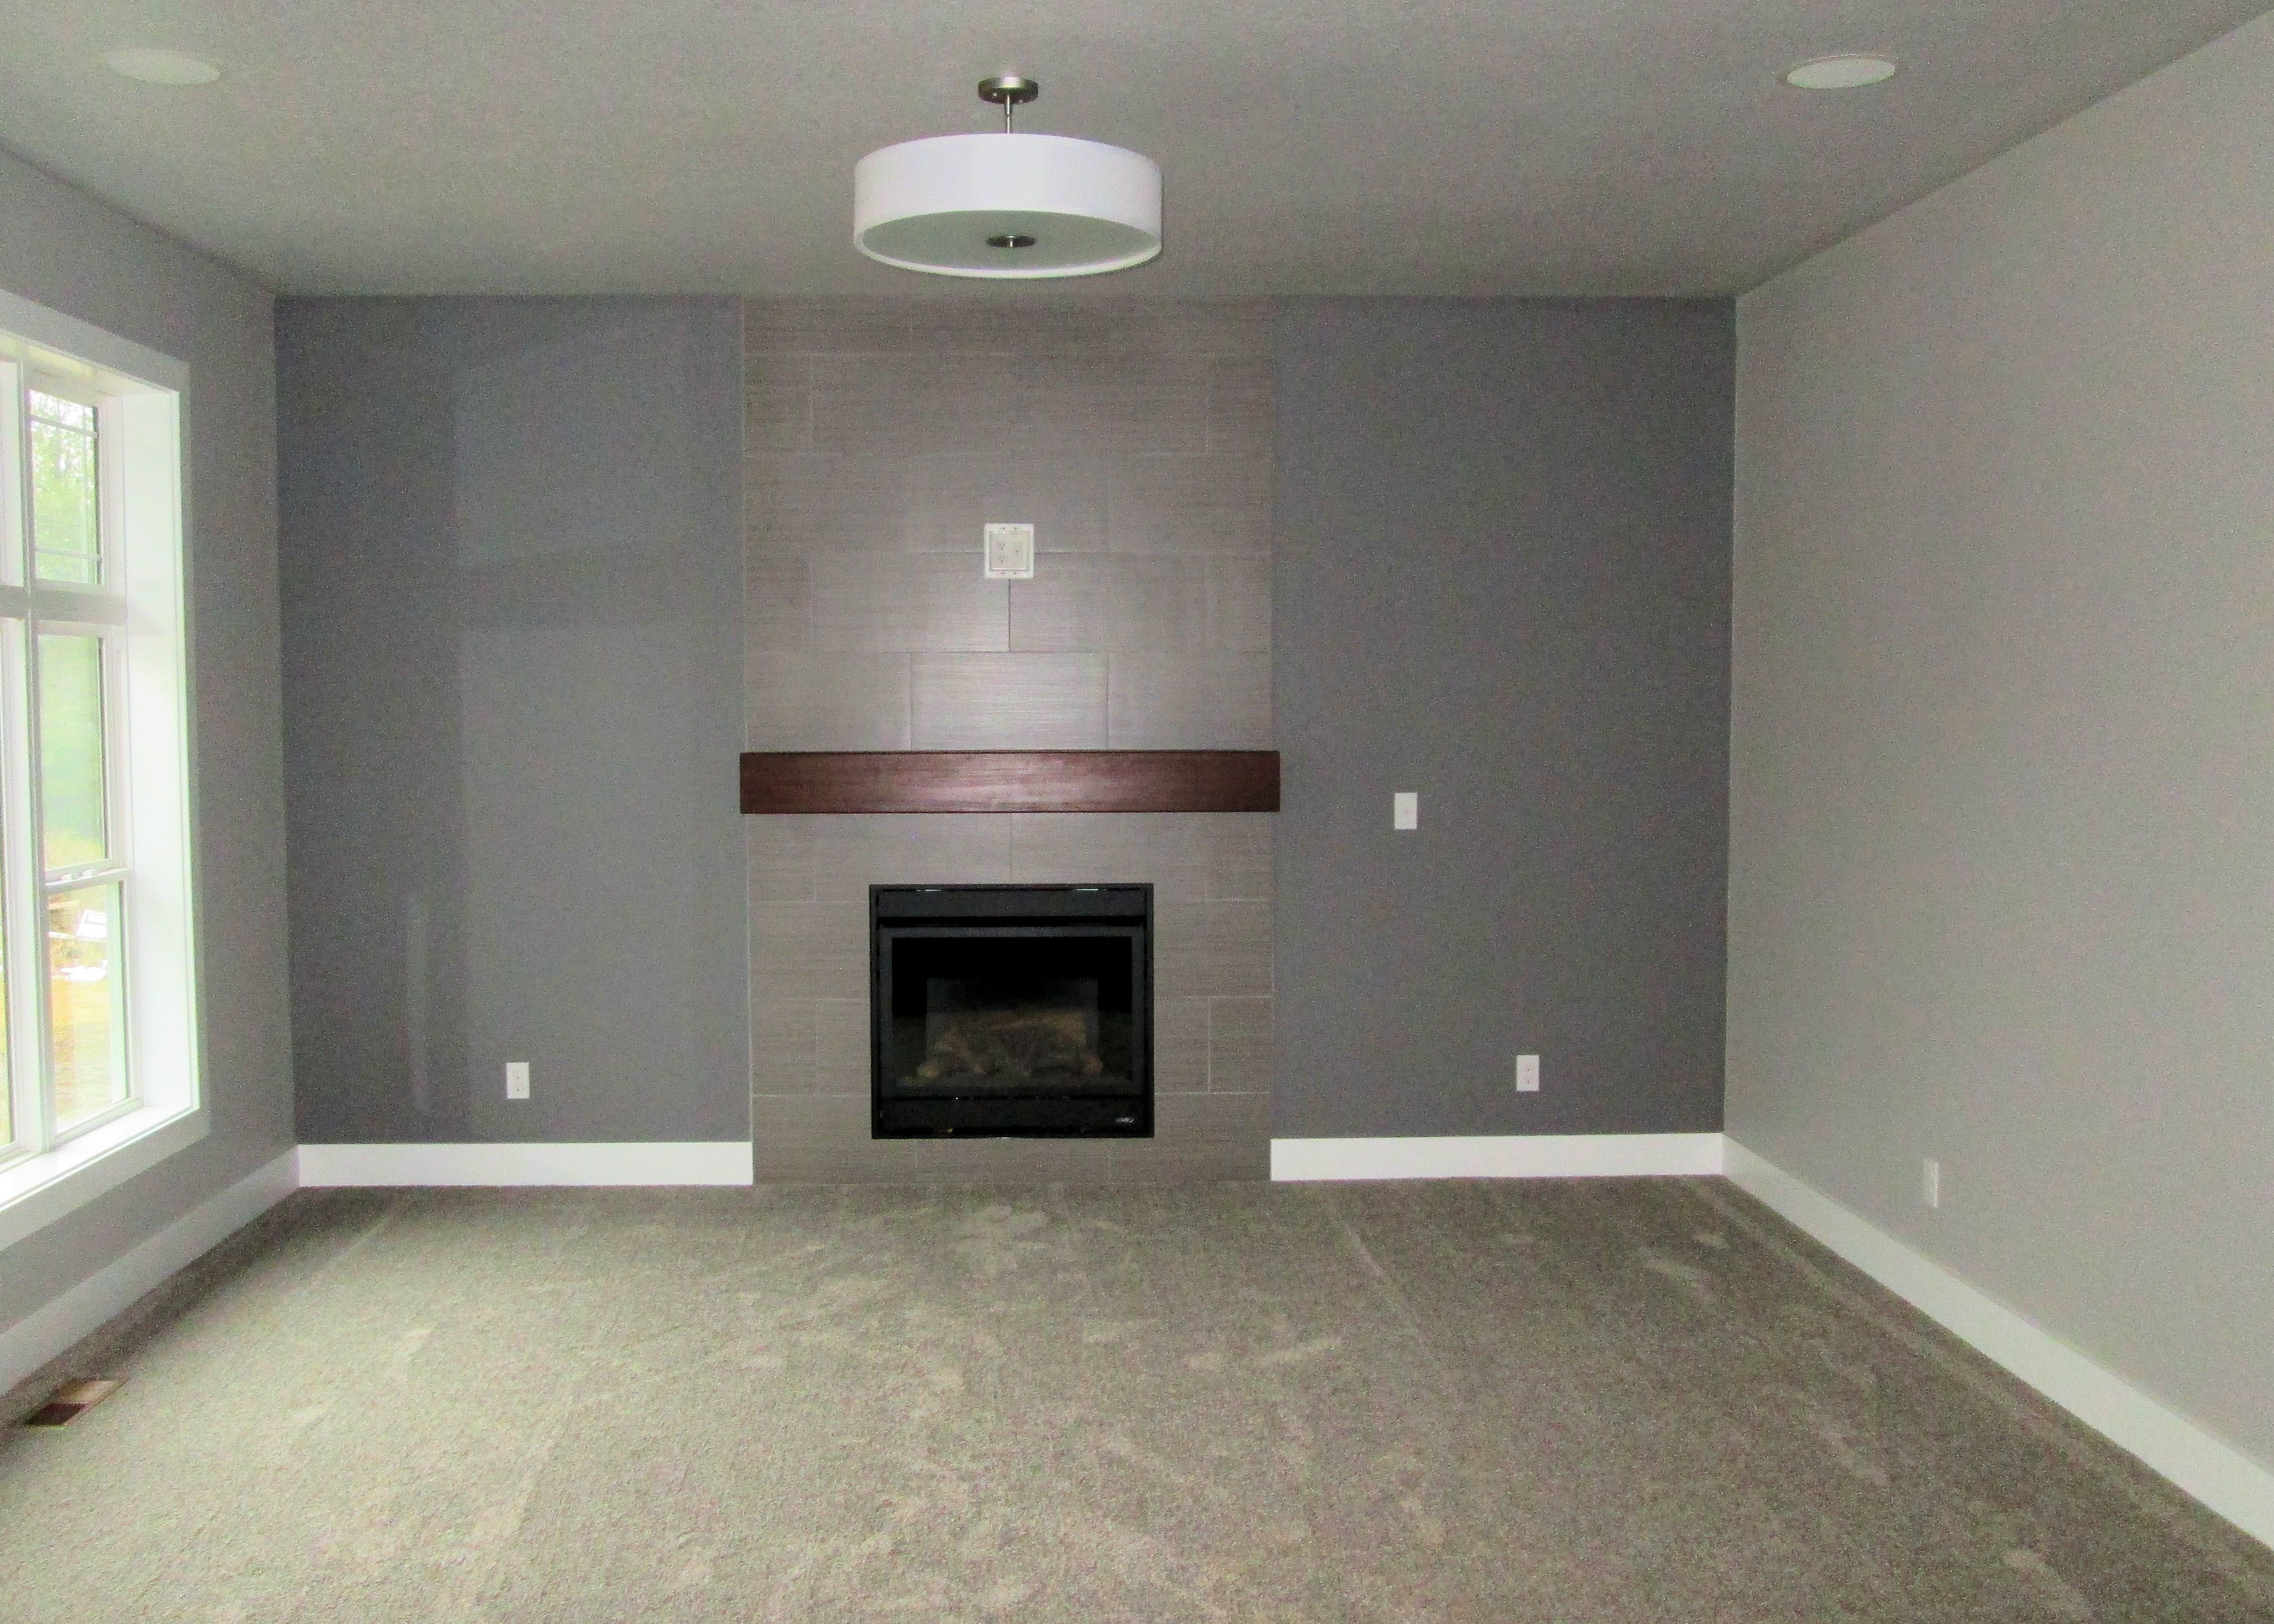 Place Of Dust Used On Walls And Ceilings With White Trim